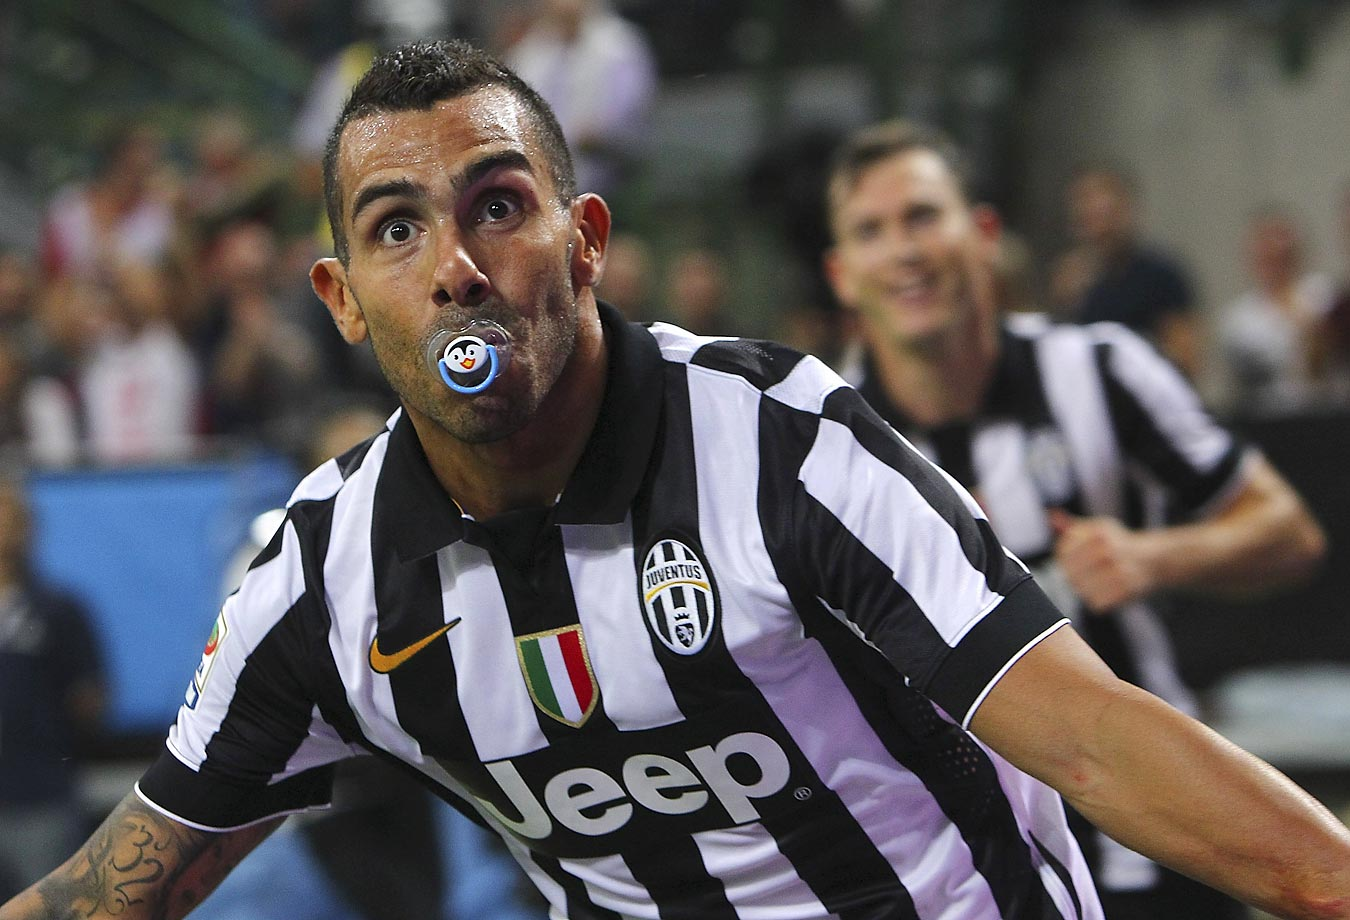 Carlos Tevez of Juventus FC celebrates after scoring the opening goal.